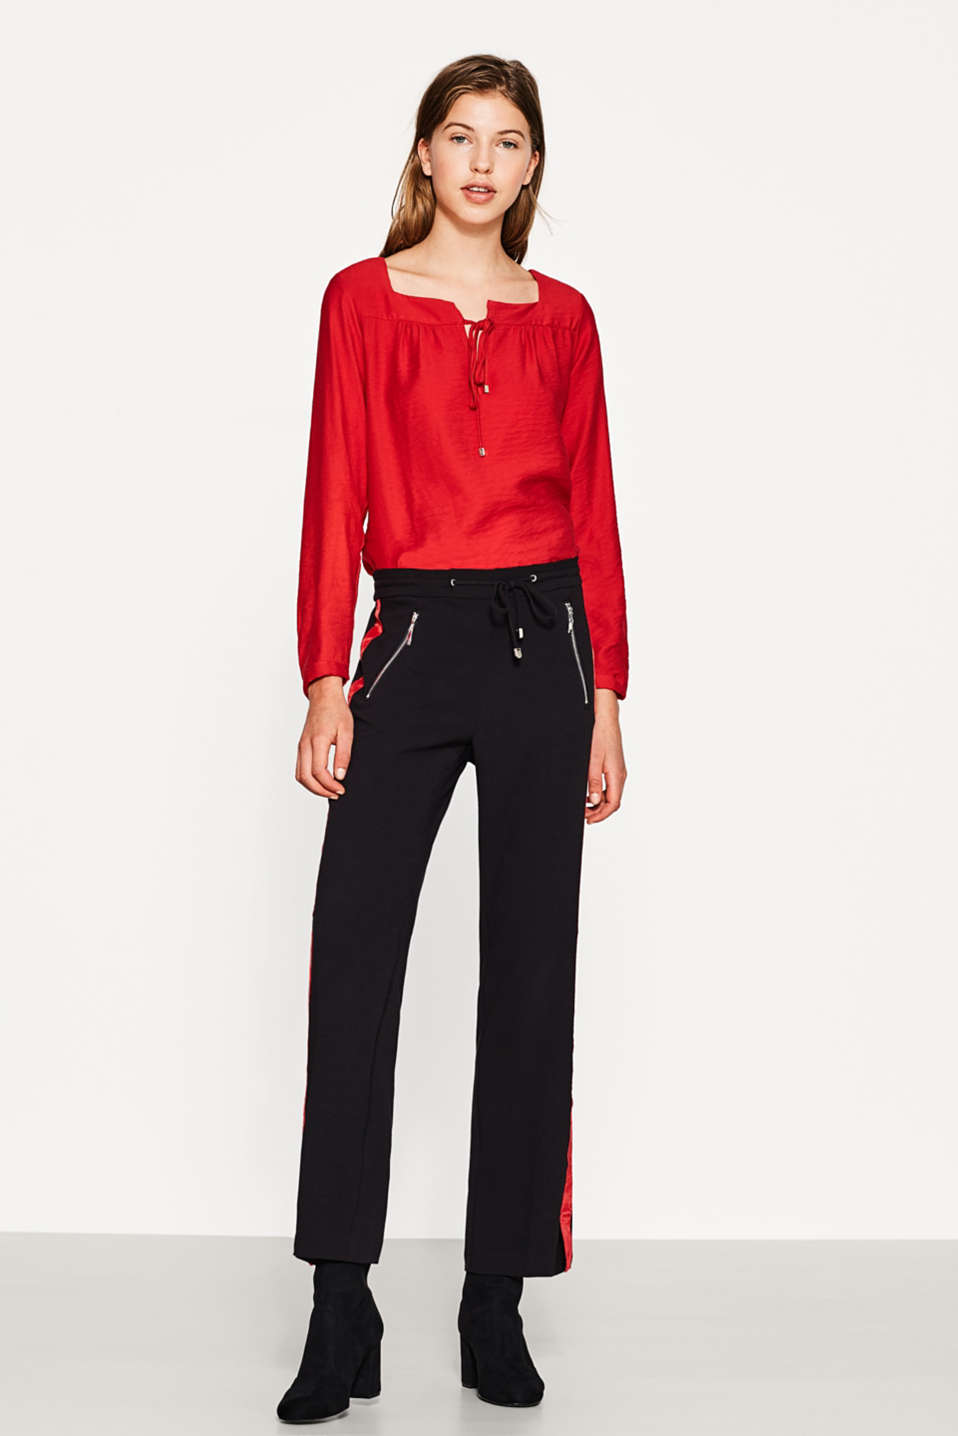 Esprit - Textured blouse with a square neckline